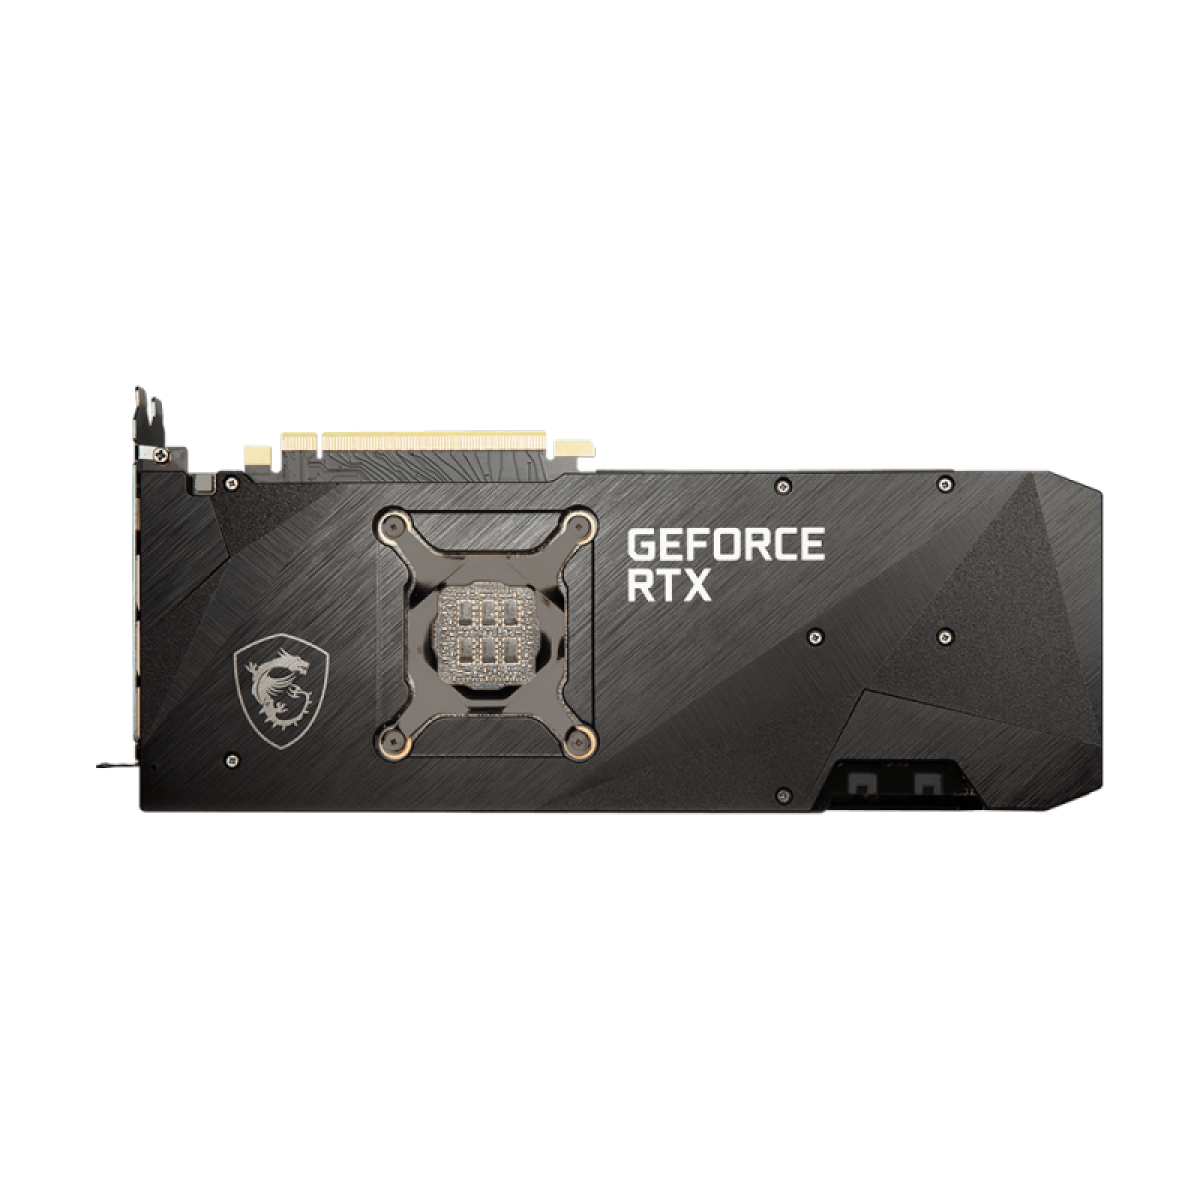 Placa de Vídeo MSI, GeForce, RTX 3080 VENTUS 3X OC, 10GB, GDDR6X, 320Bit